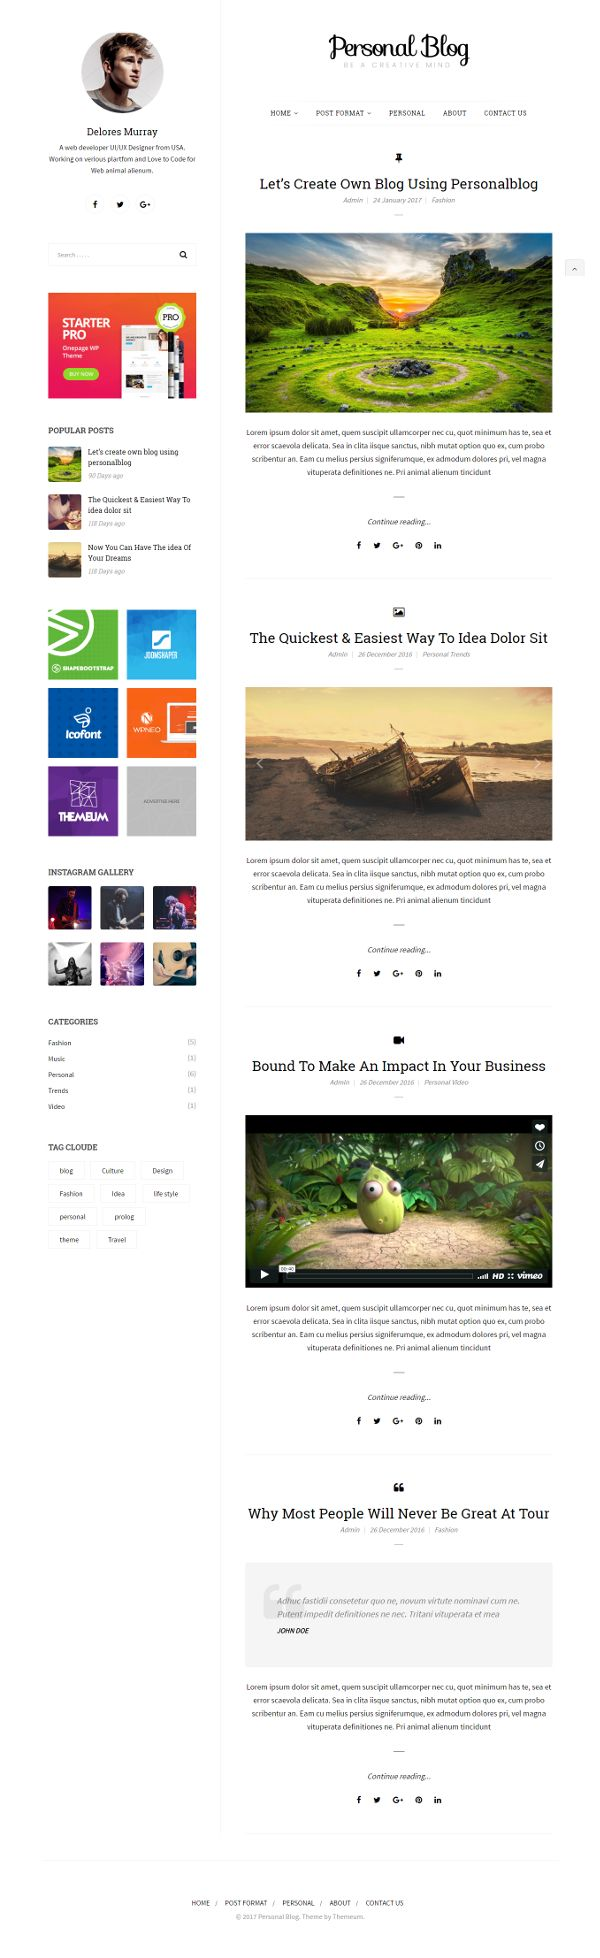 Personal Blog - Theme WordPress Gratis Untuk Blog